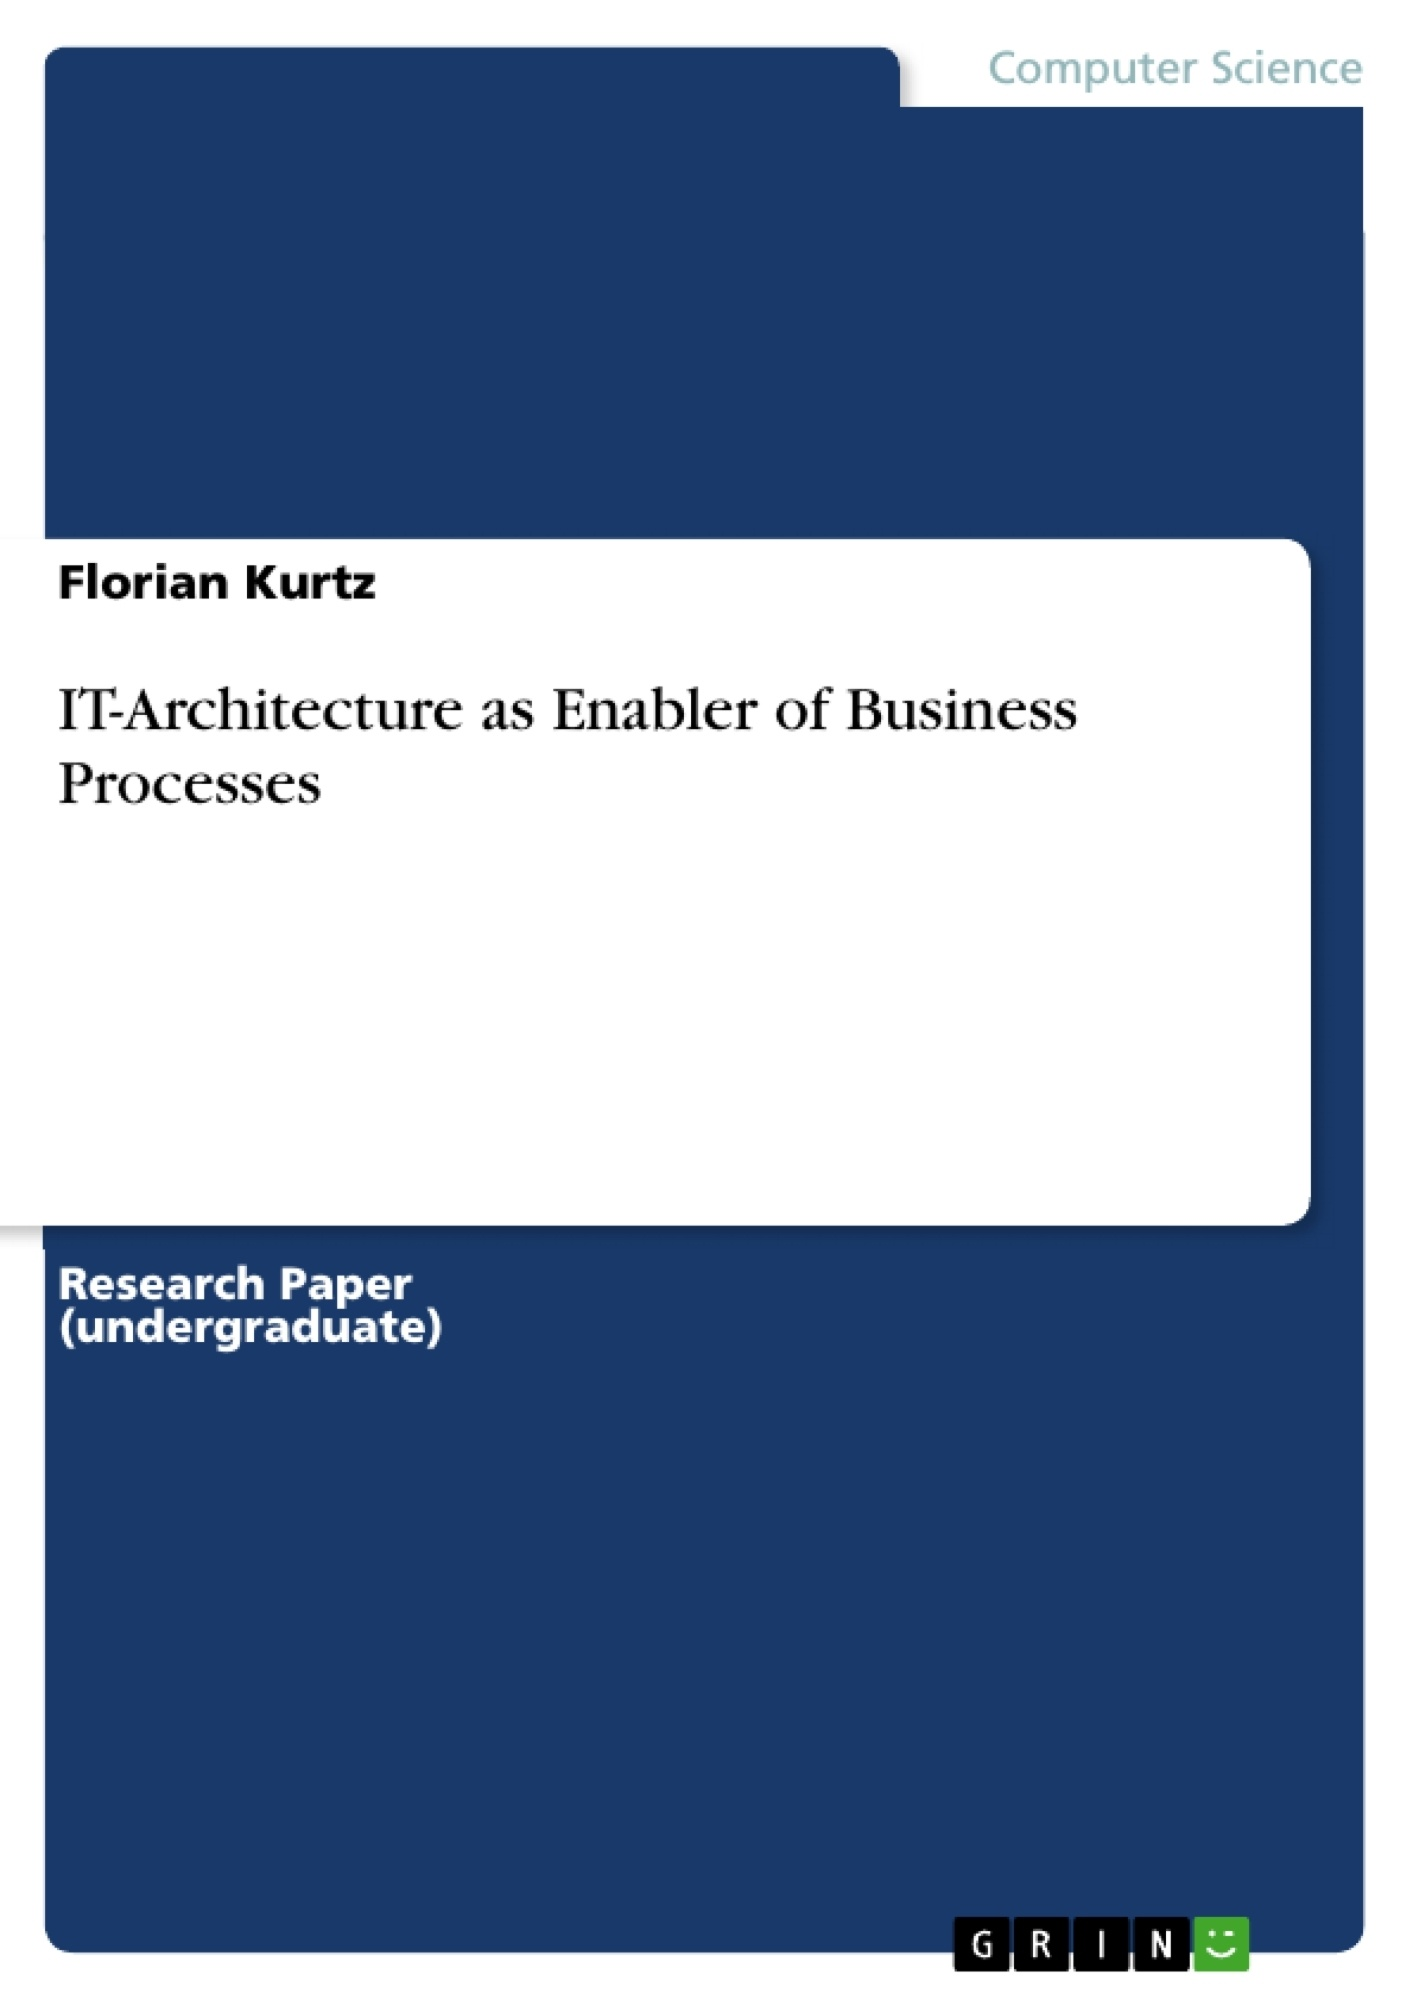 Title: IT-Architecture as Enabler of Business Processes